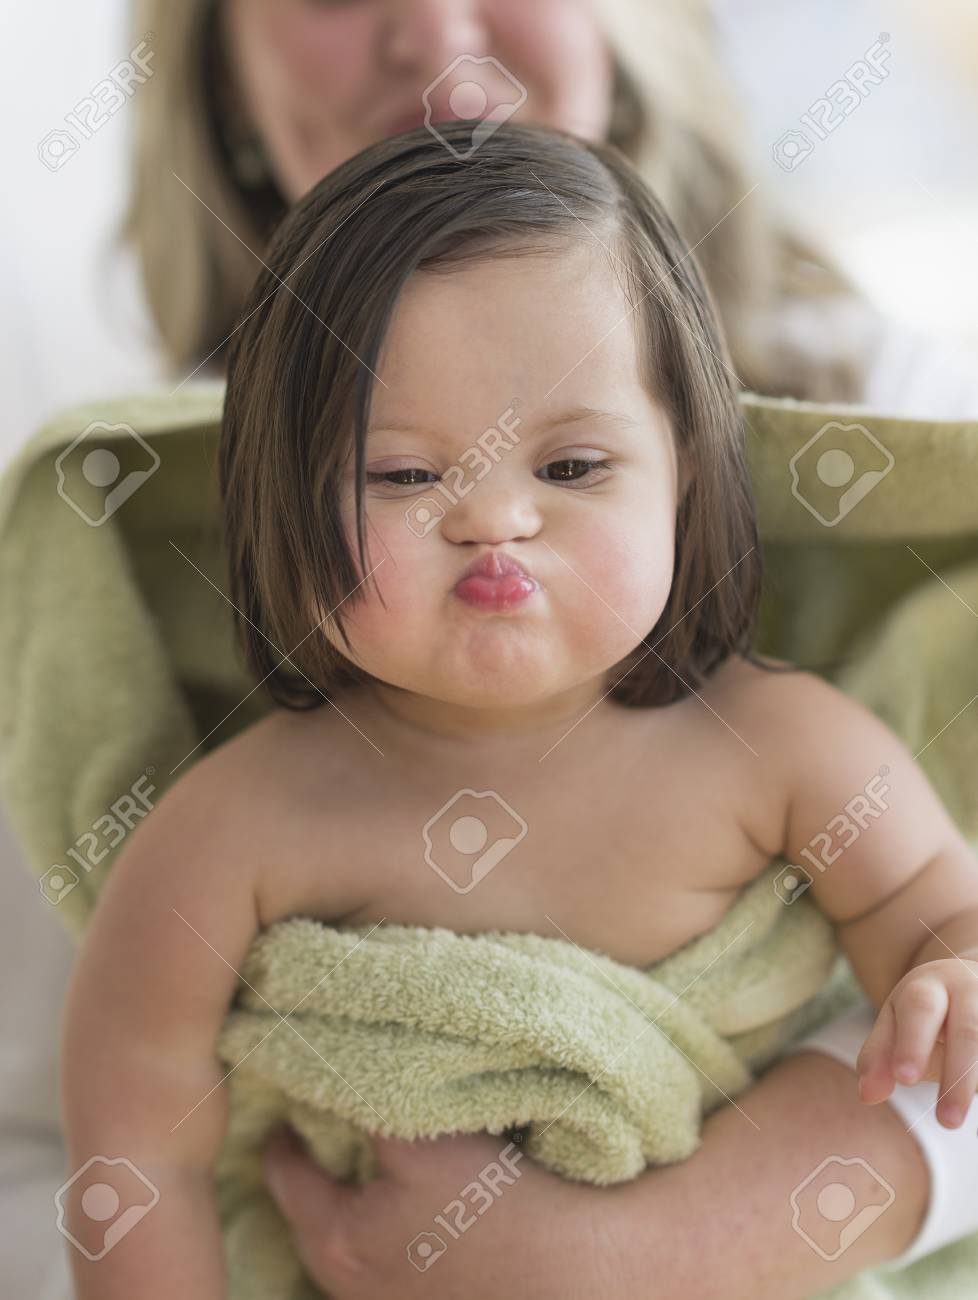 Hispanic Toddler Making Faces After Bath Stock Photo, Picture And ...